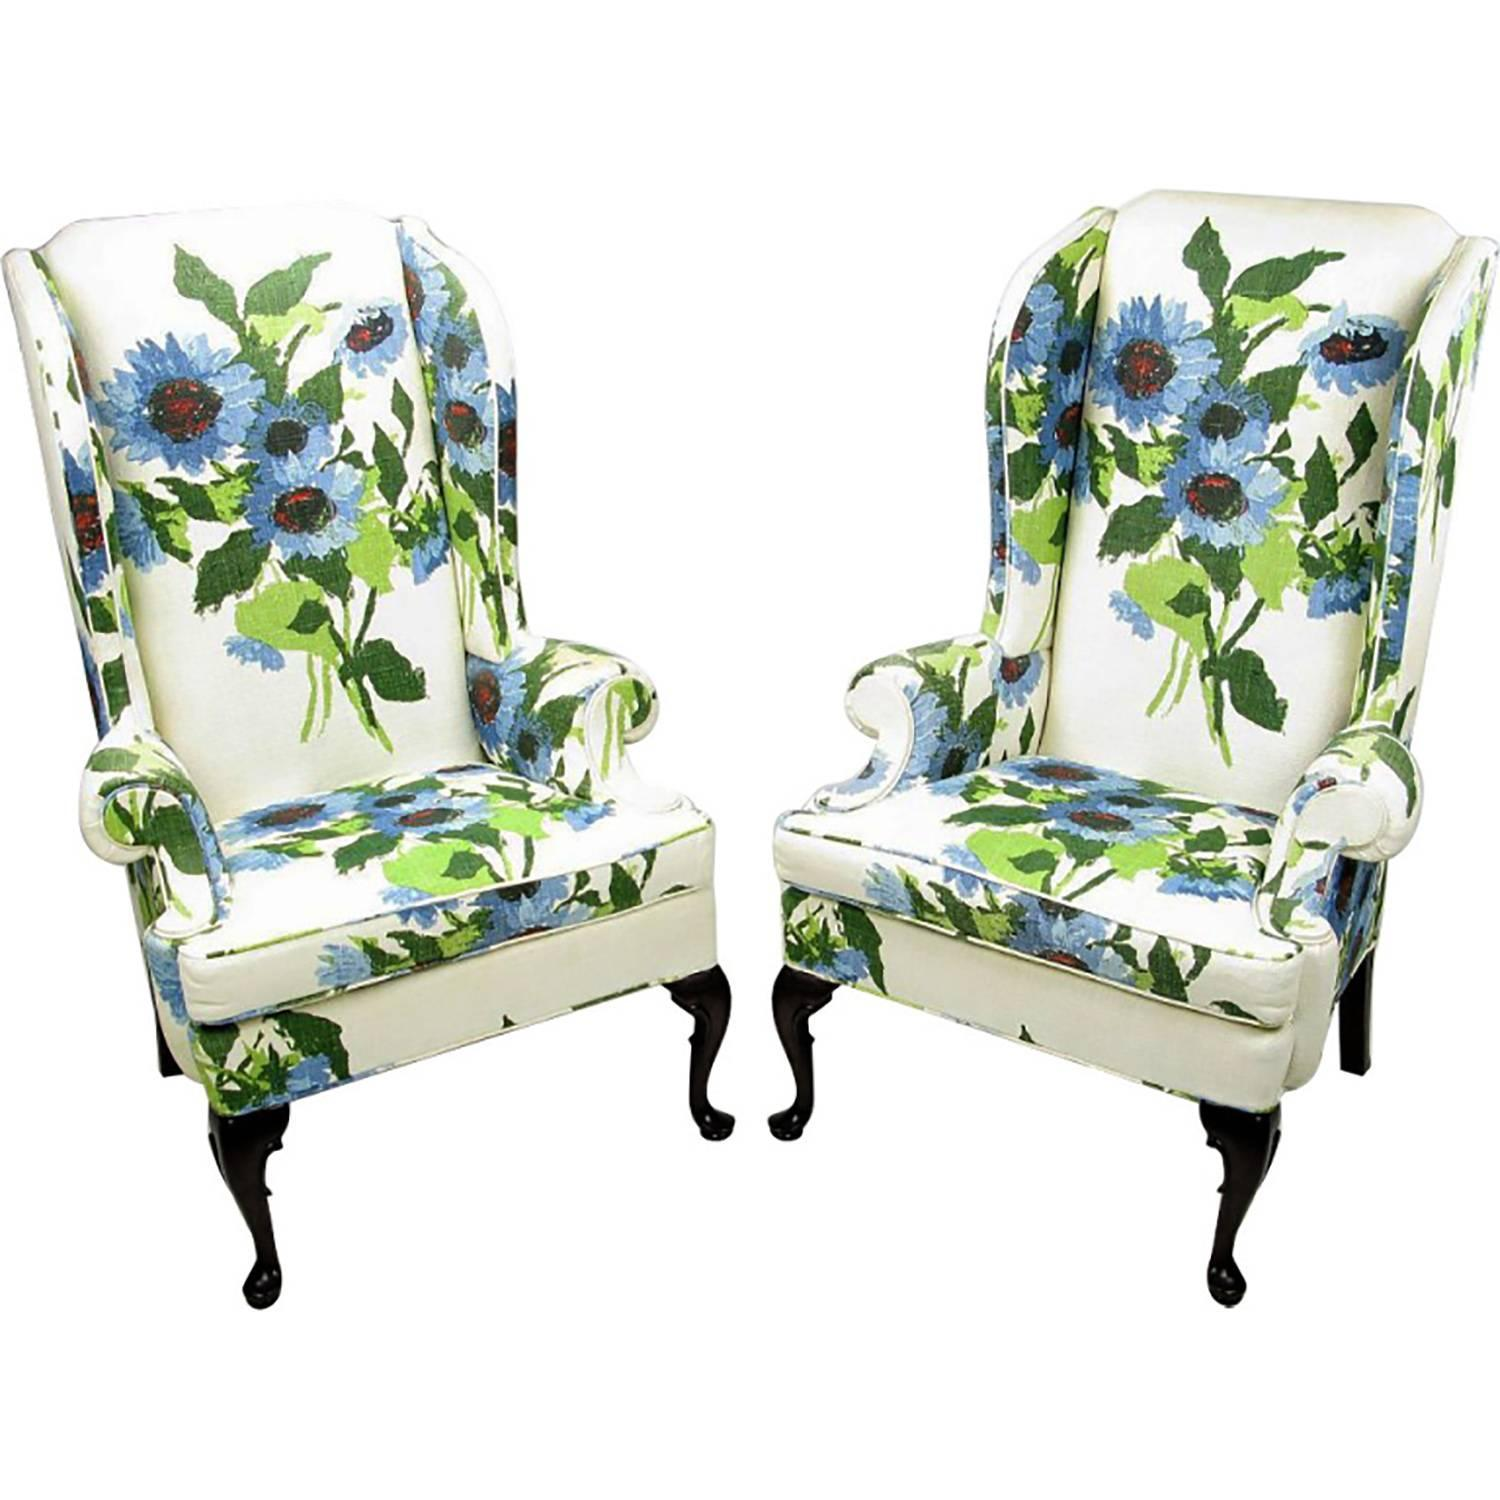 Flower Chair Pair Of Elegant And Bold Floral Linen Upholstered Wing